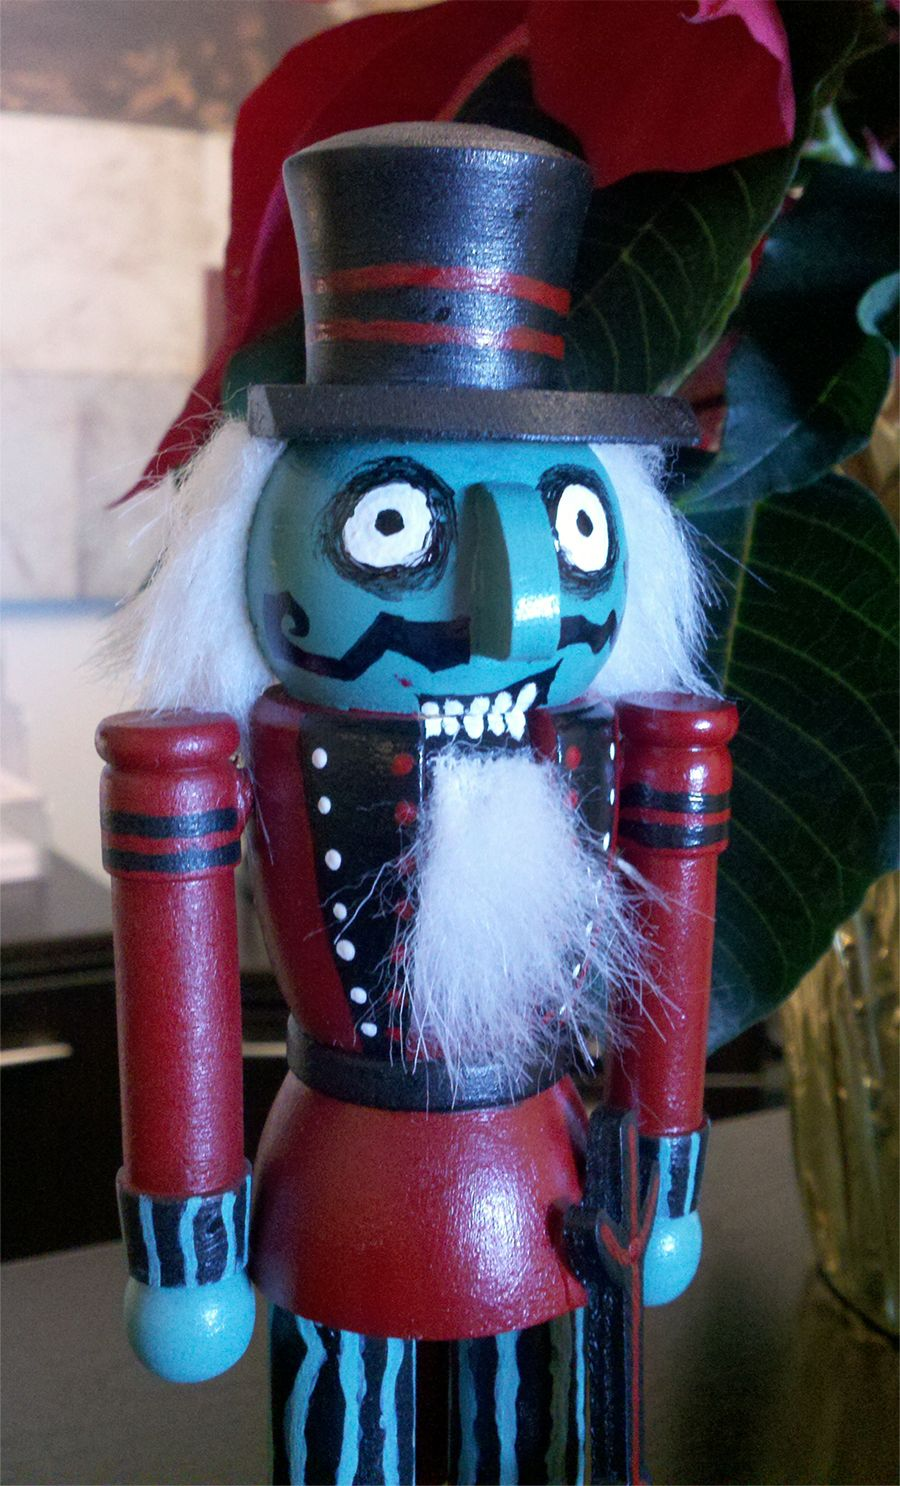 nutcracker from disneylands haunted mansion nightmare before christmas - Nightmare Before Christmas Nutcracker